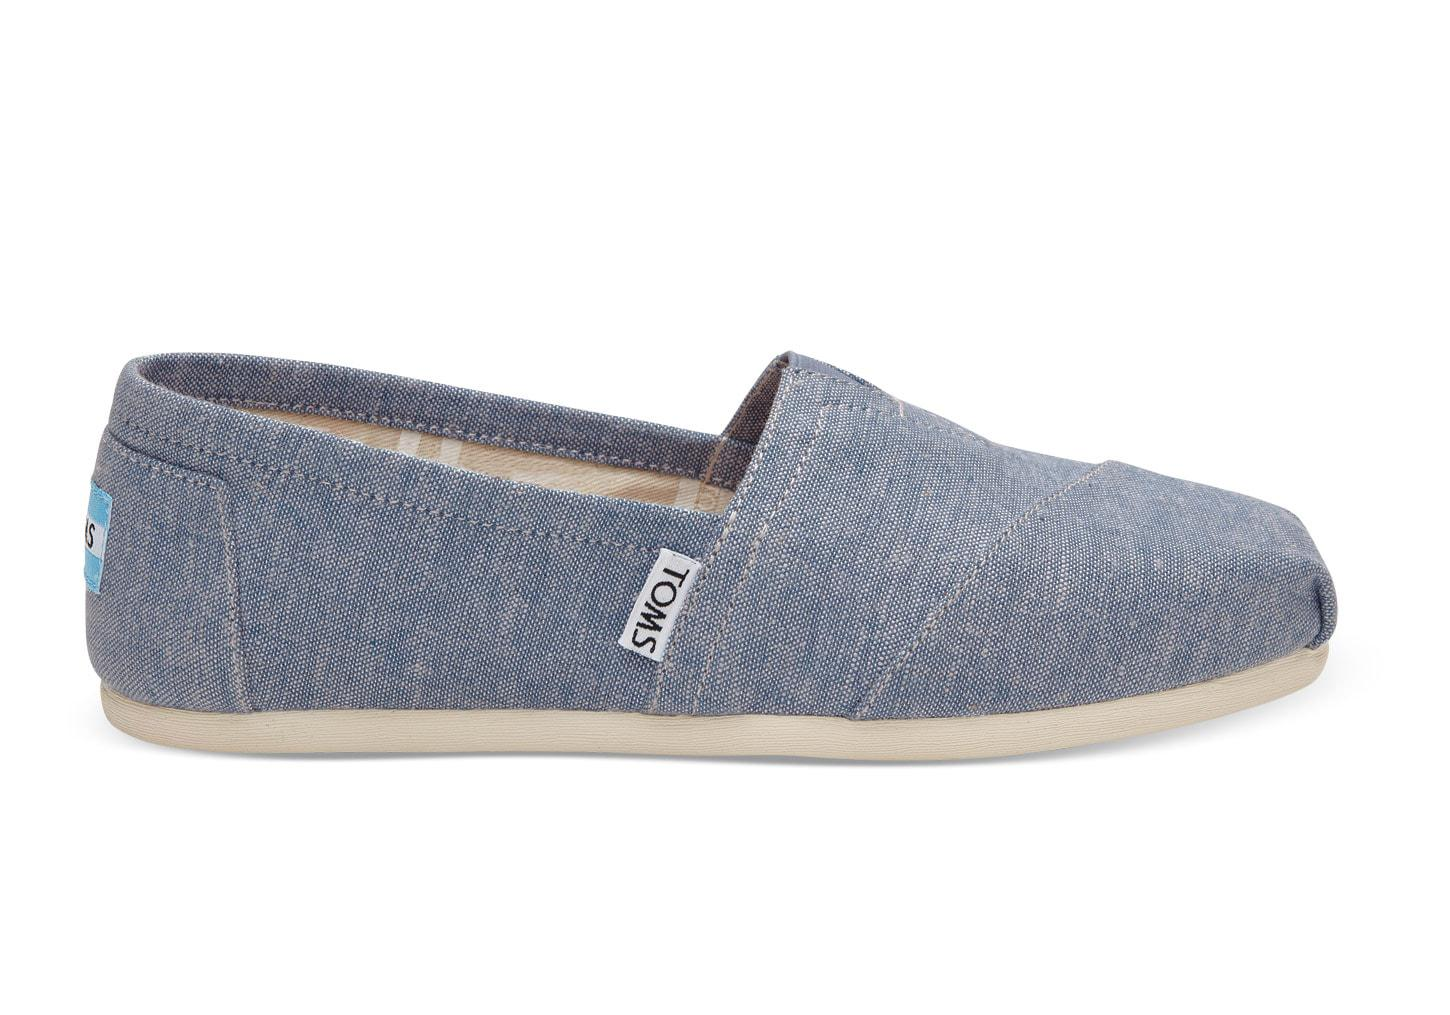 TOMS Women's Classic Chambray Rope Sole Imperial Blue Dot Ankle-High Canvas Slip-on Shoes - 9.5M gUuNMhi